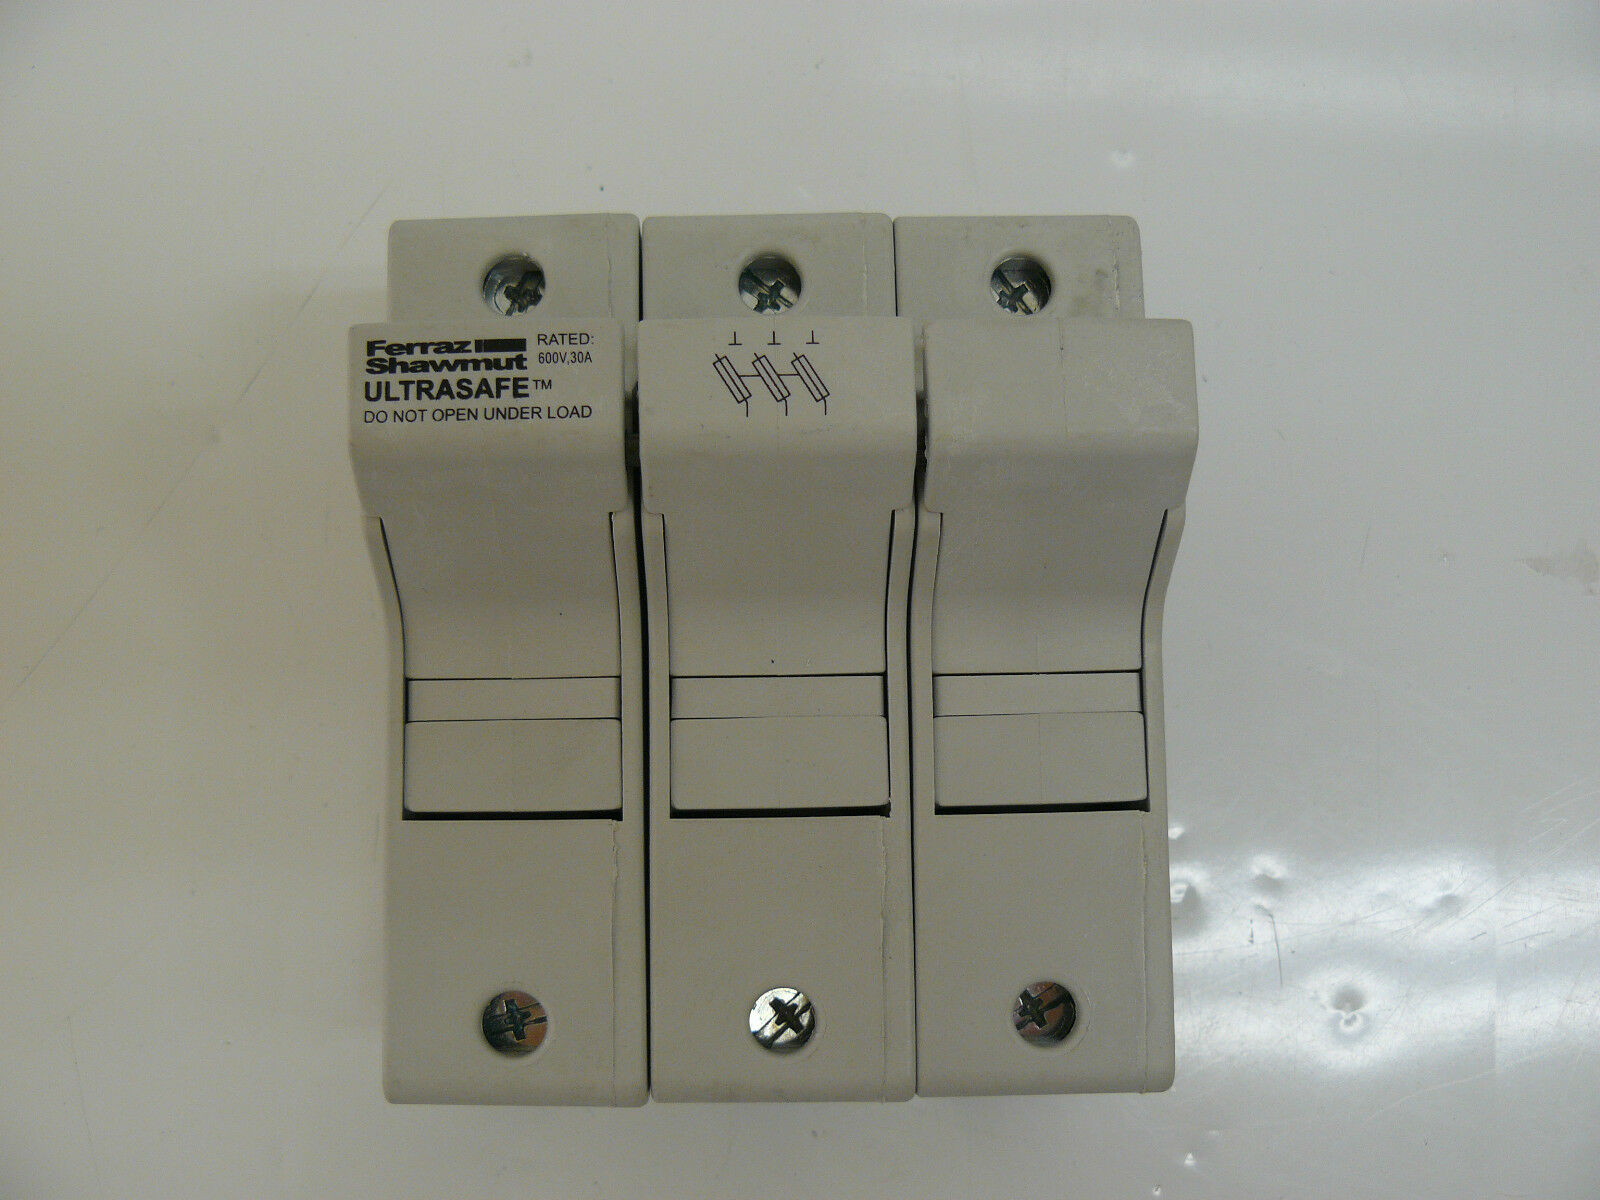 Ferraz Shawmut J214460 Fuse Holder 3 Pole 30 Amp 600 Volt 4499 Screw In Box 1 Of 4only Available